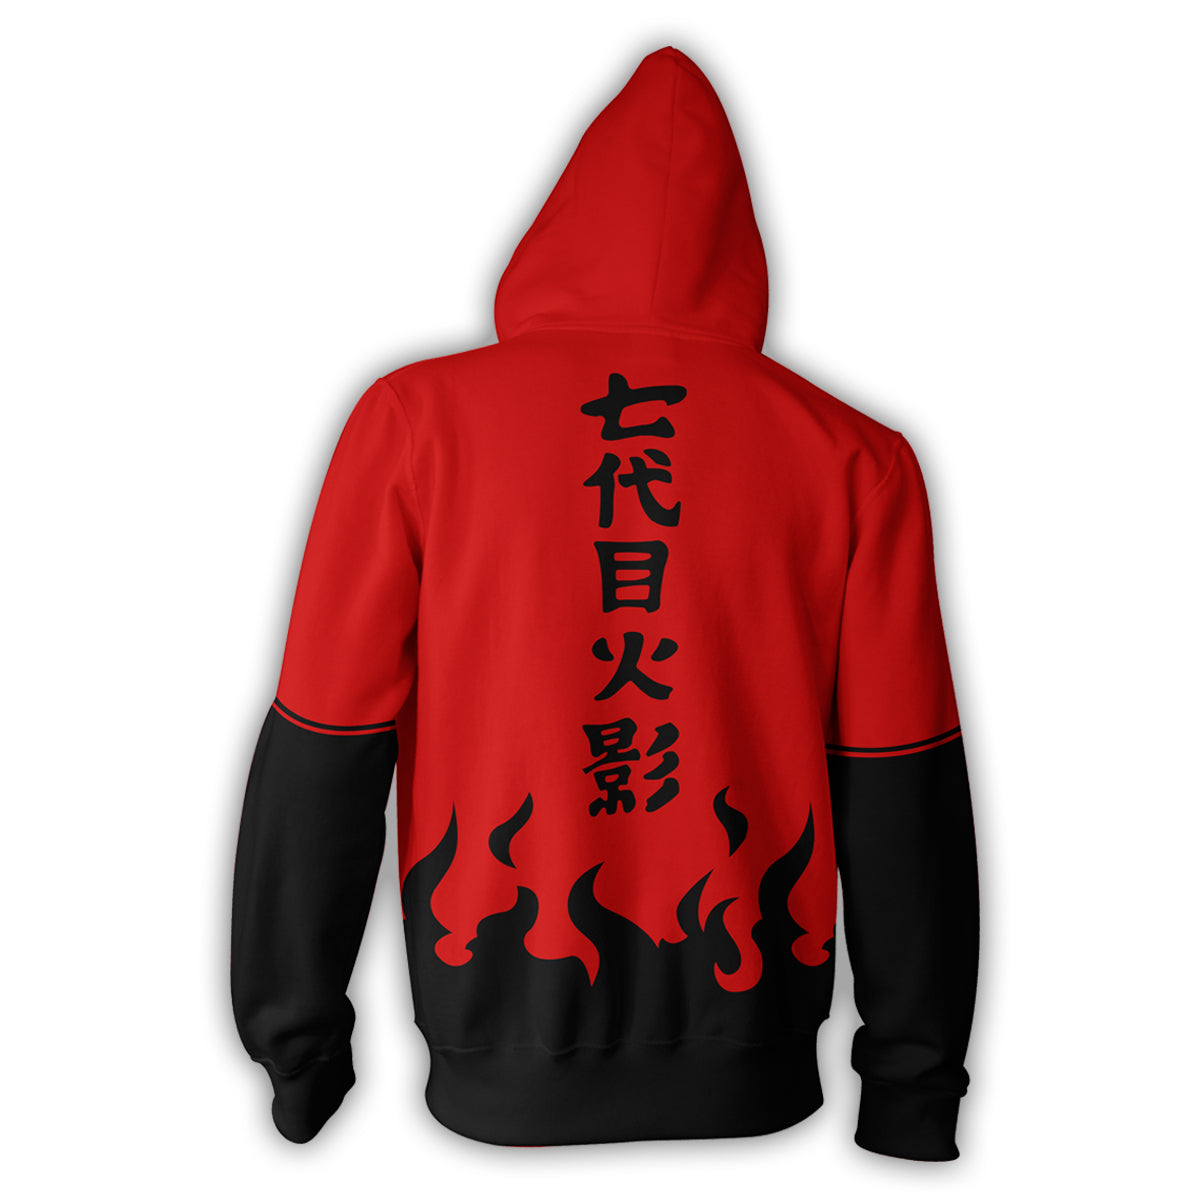 Naruto Sage Mode Zip Up Hoodie